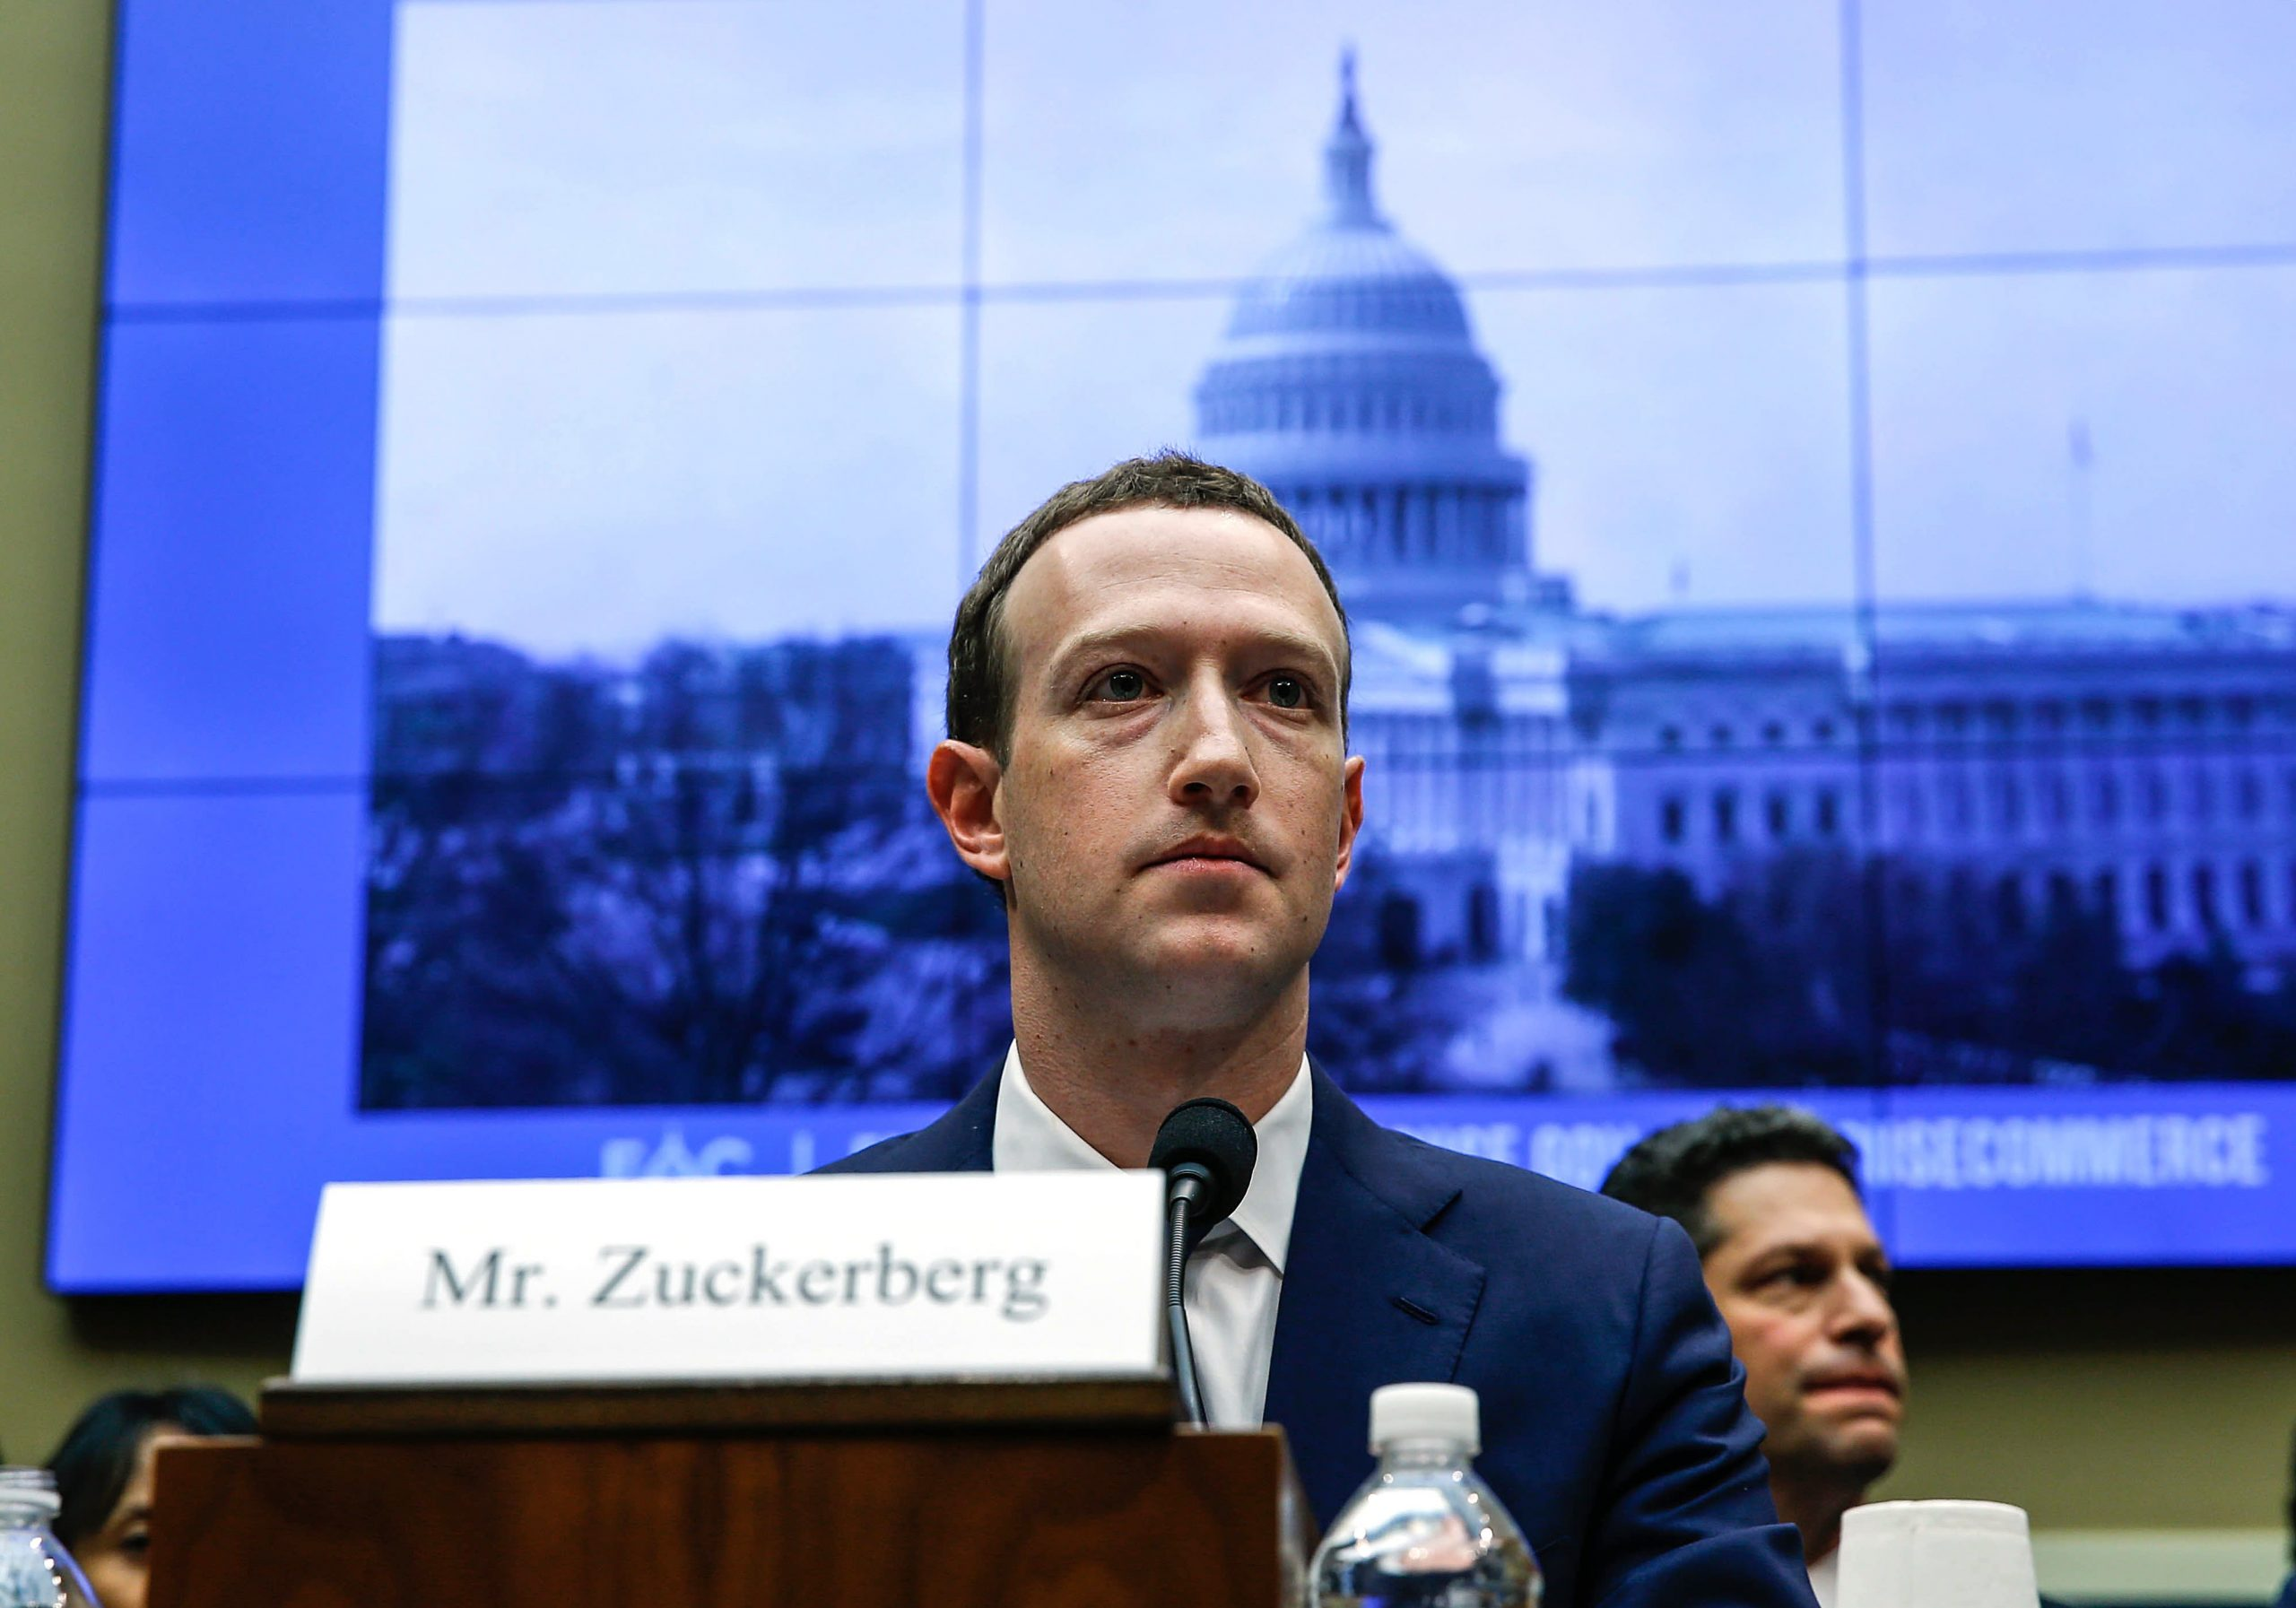 facebook-is-struggling-with-speech-rules-before-2020-elections